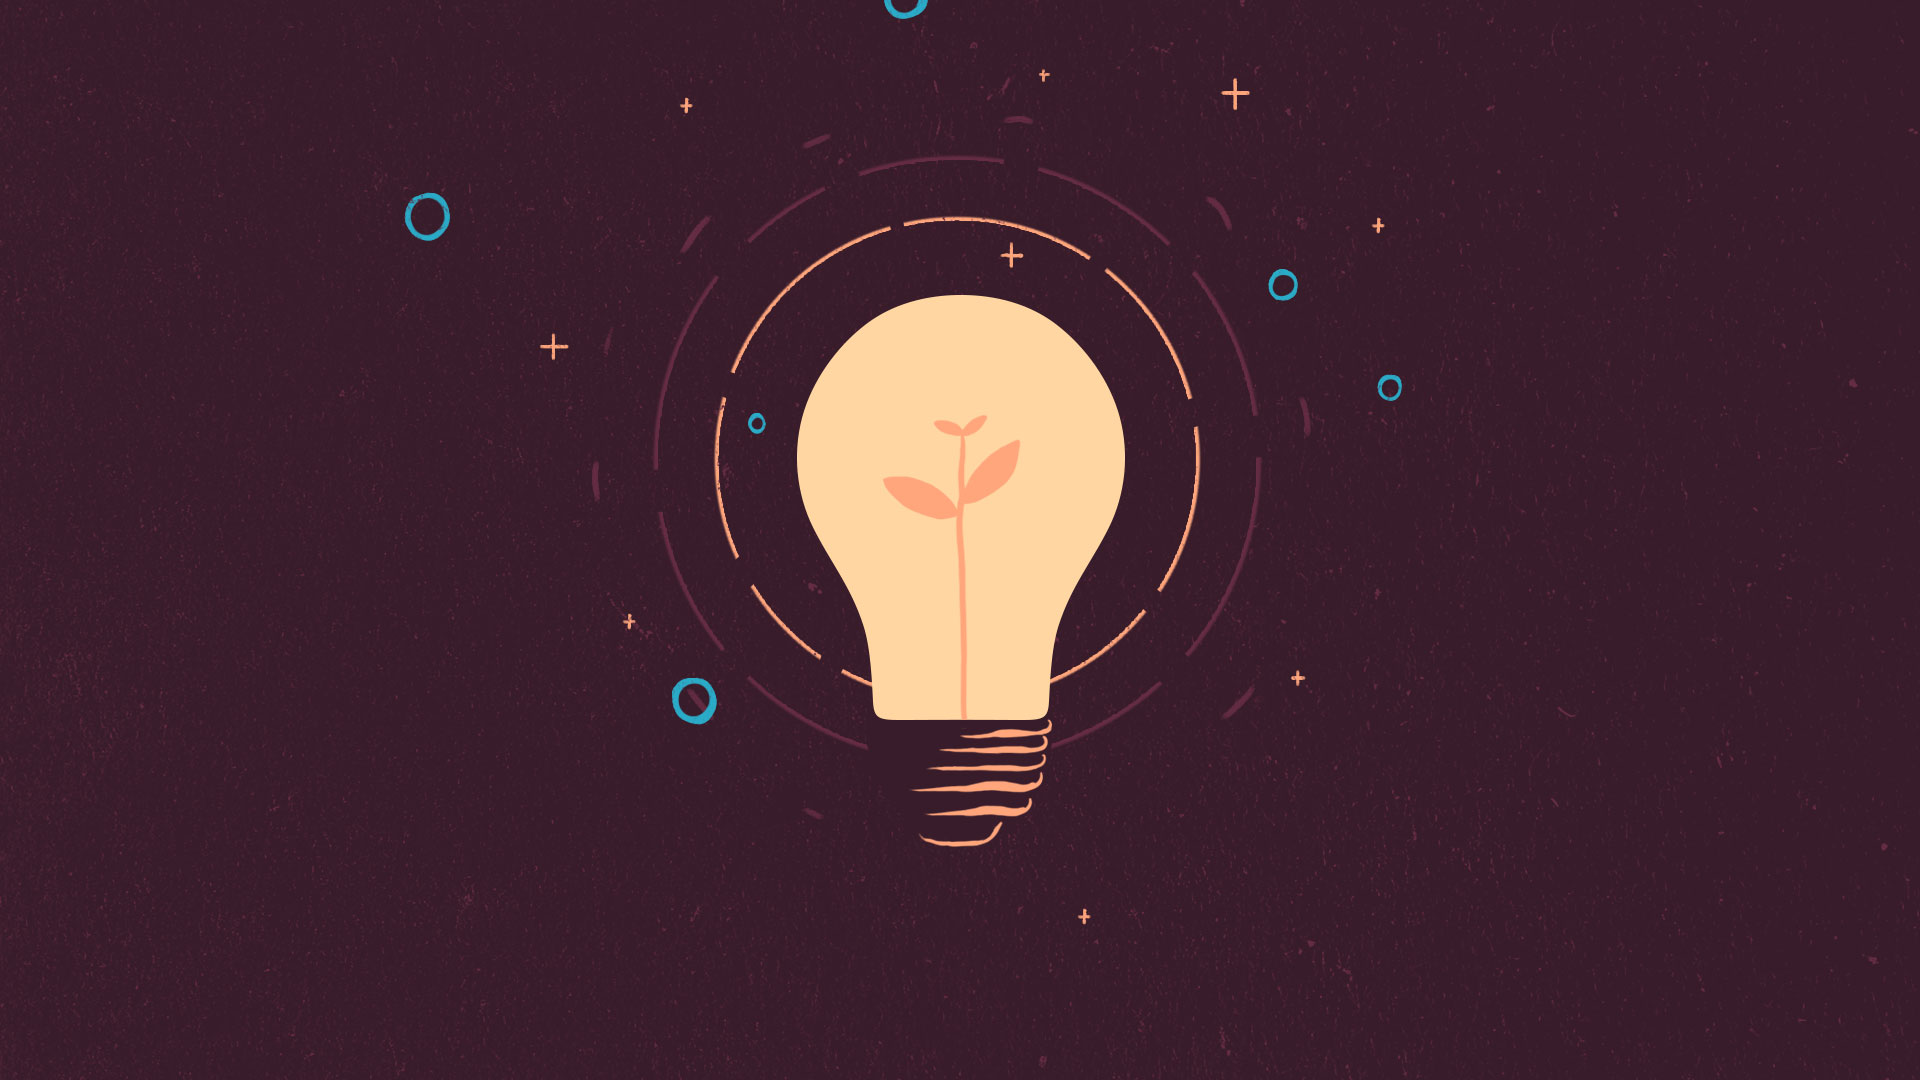 Illustration of a light bulb on and a small plant inside it